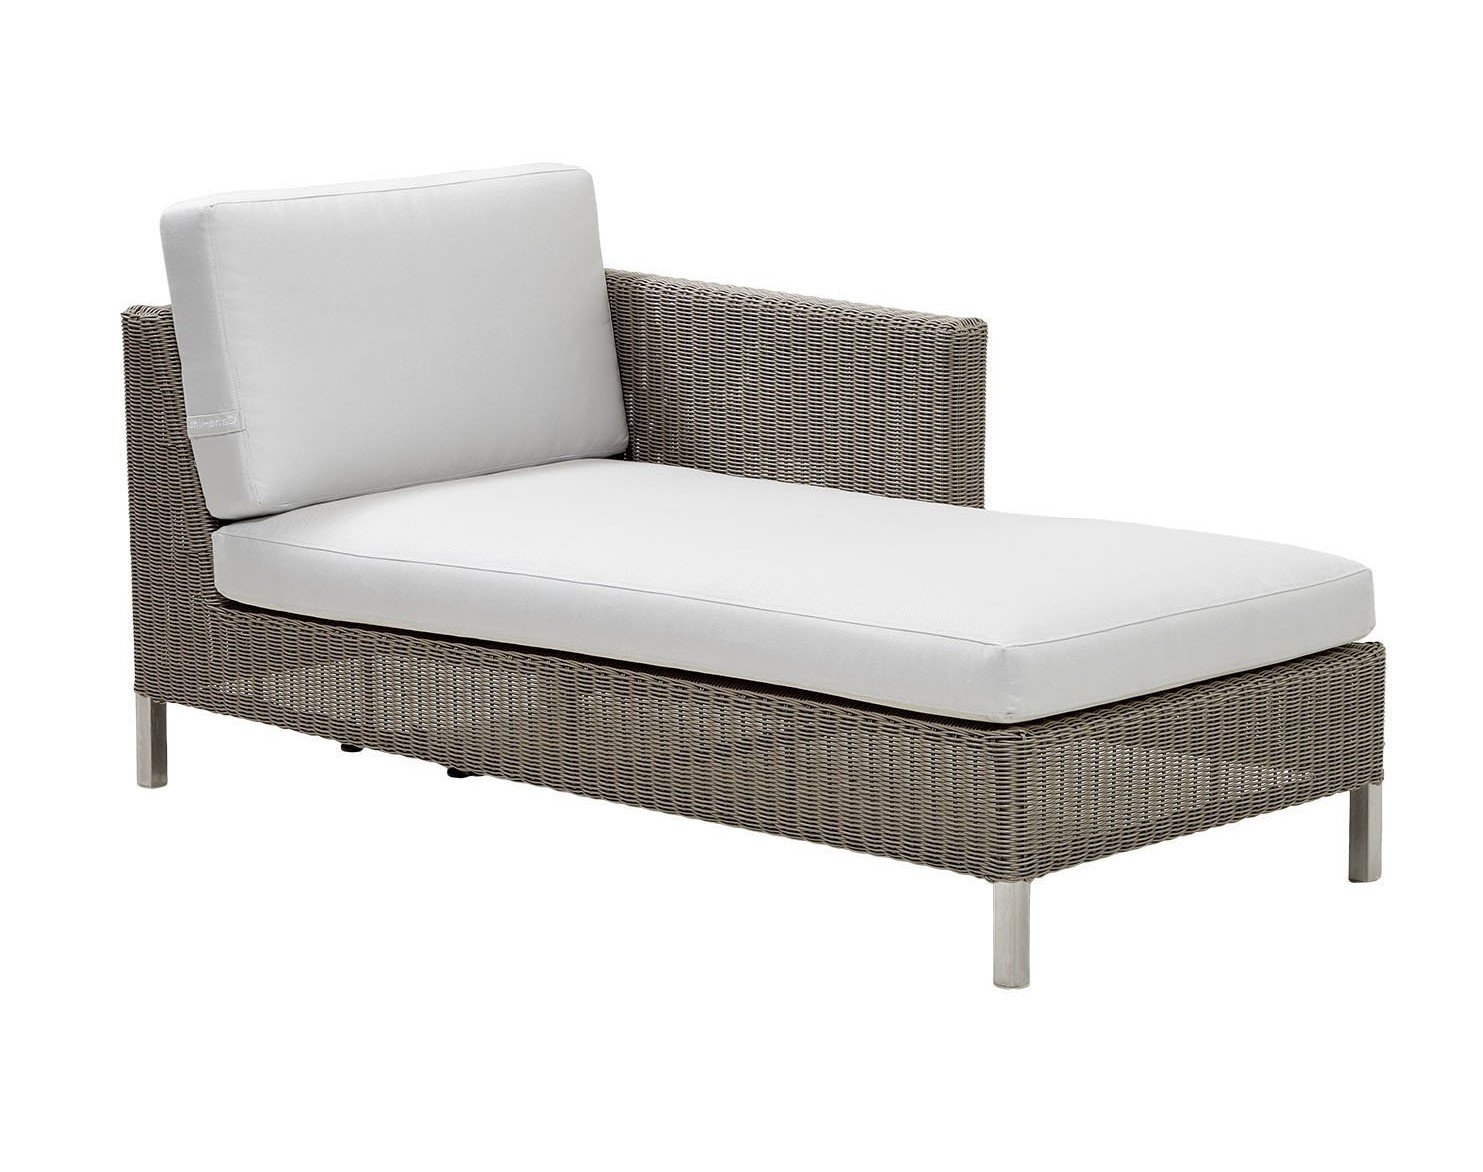 Connect Left Chaise Lounger from Cane-line, designed by Cane-line Design Team